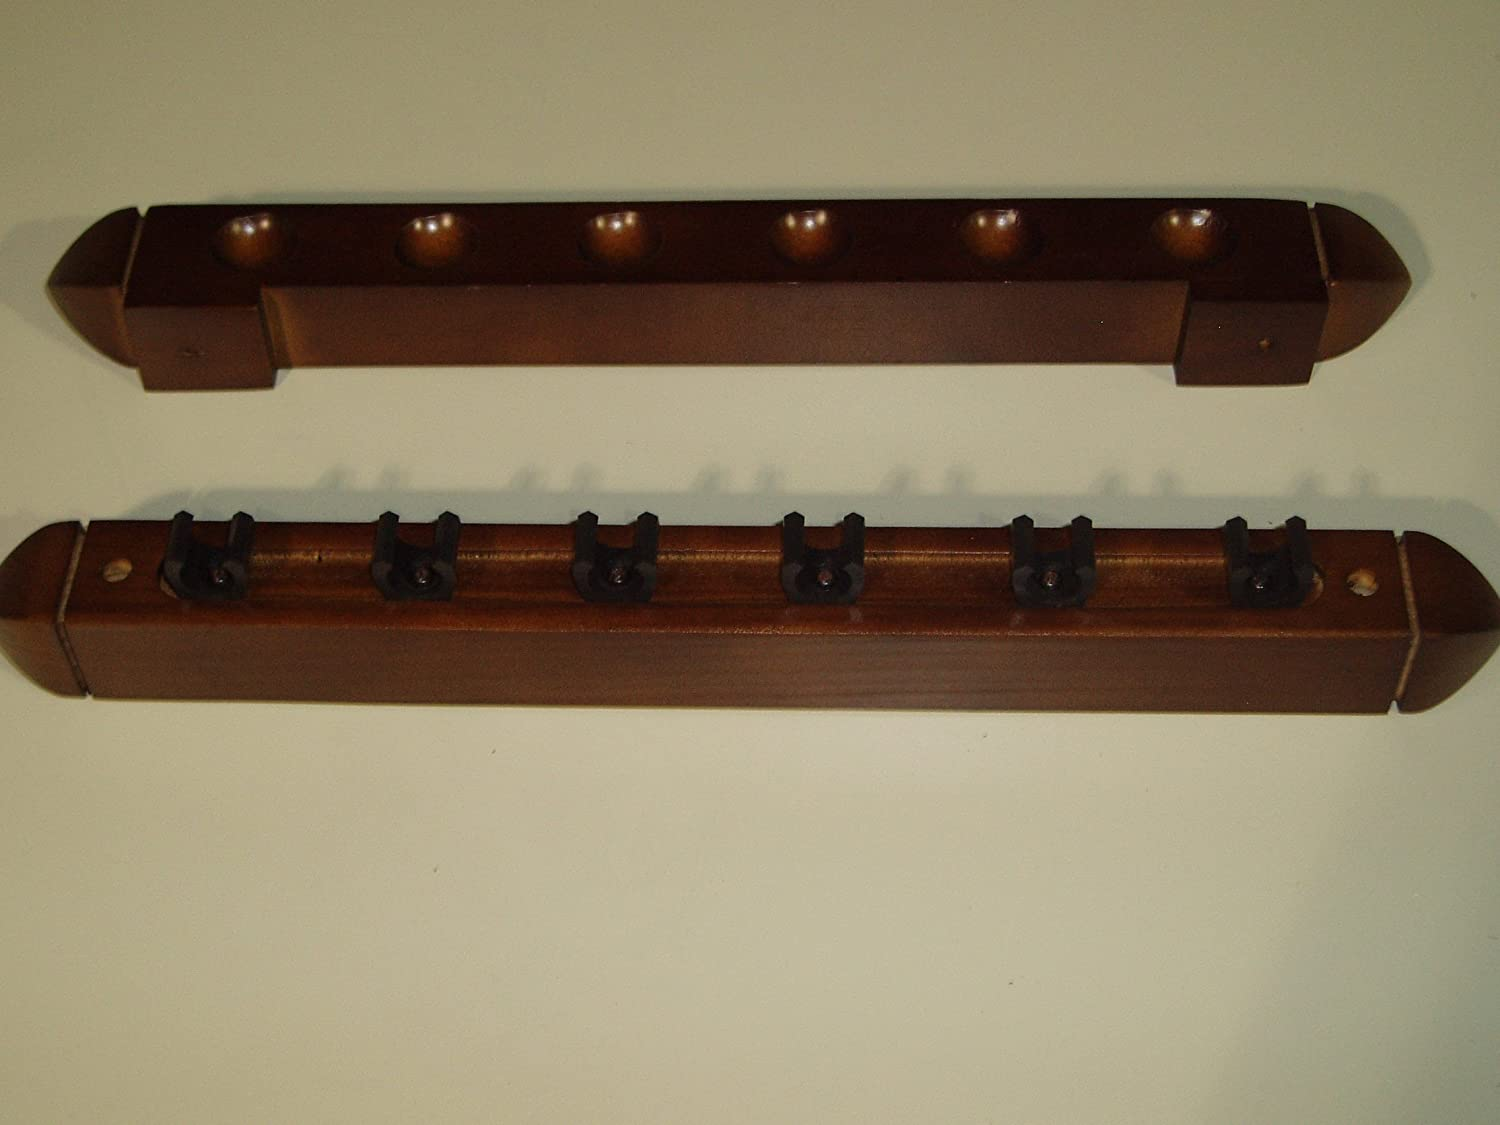 2 PIECE MAHOGANY POOL/SNOOKER CUE RACK HOLDS 6 CUES ** by SGL